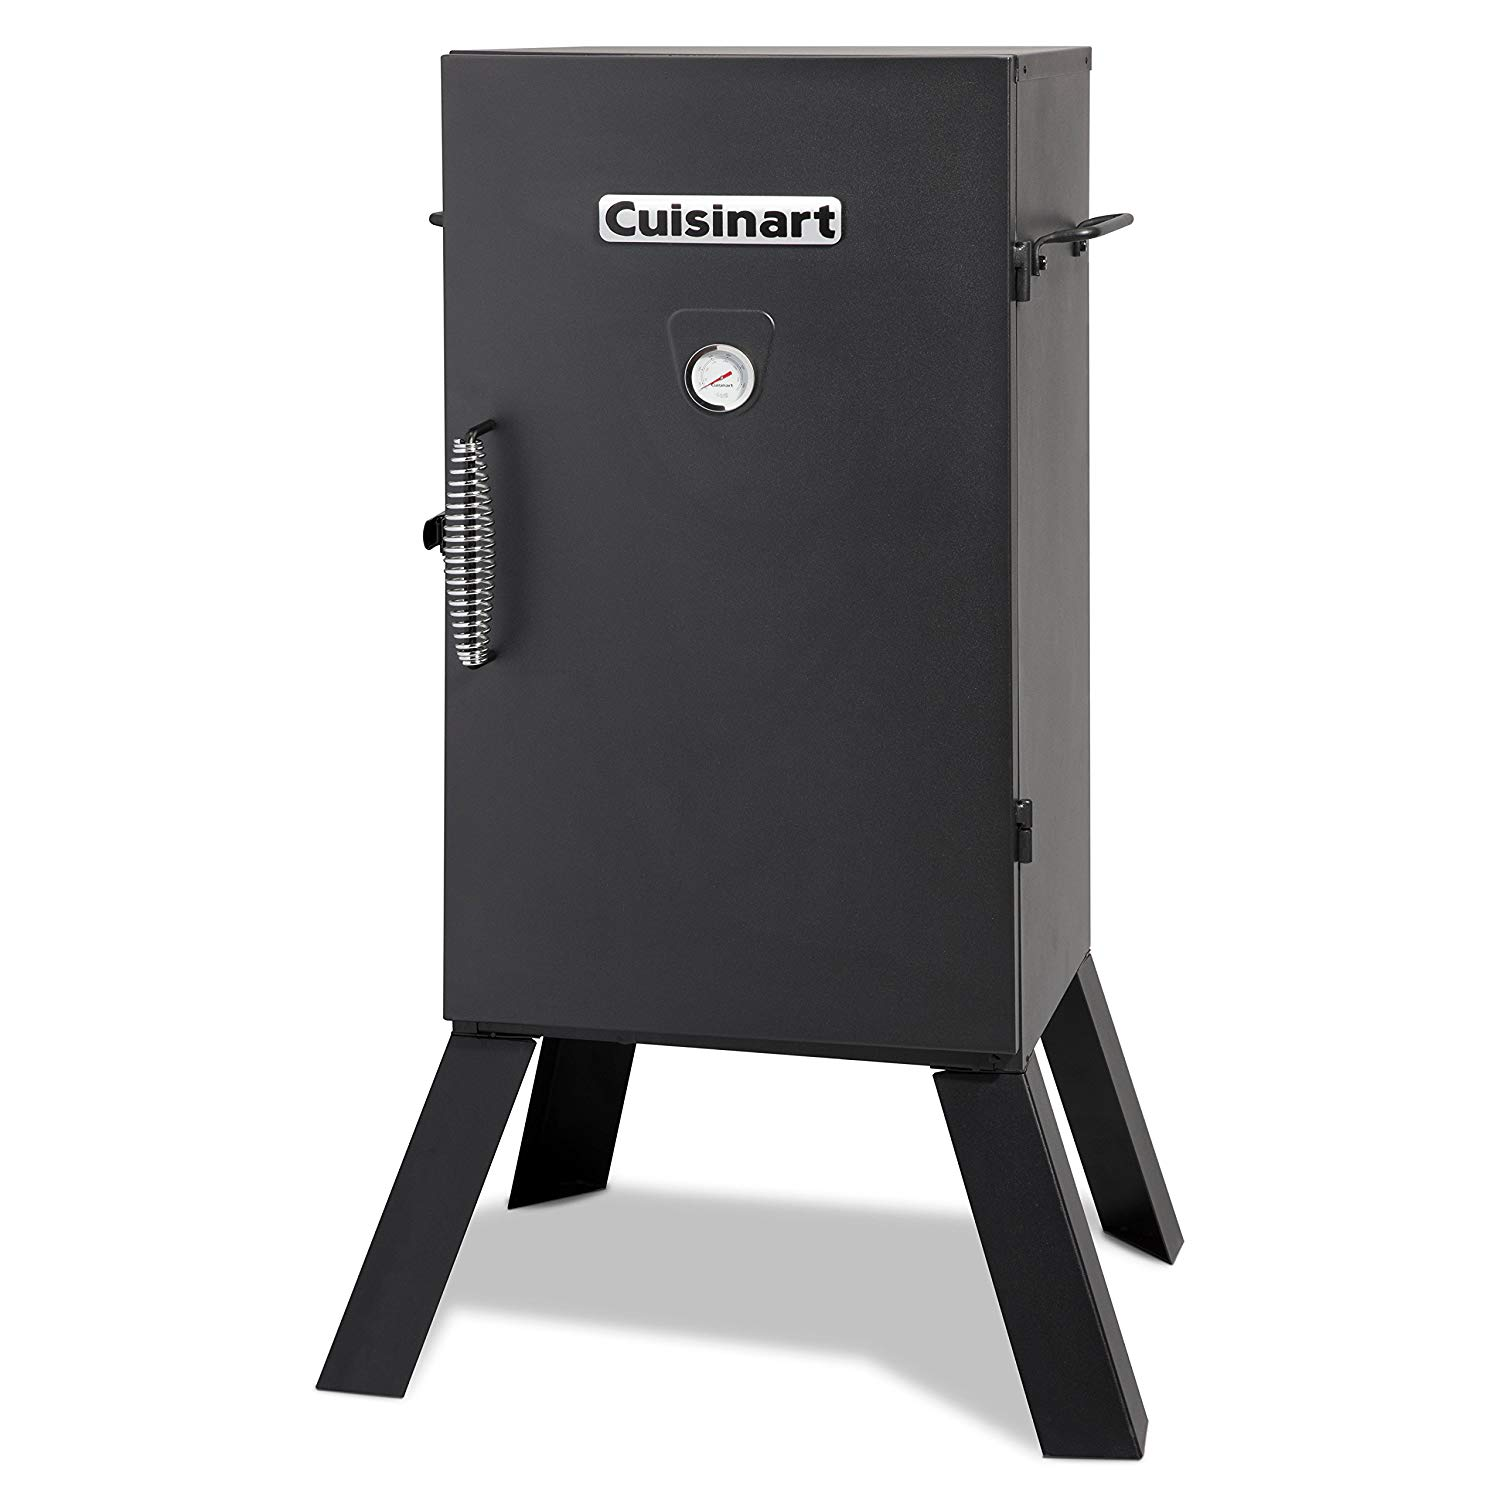 Cuisinart COS-330 Electric Smoker, Black